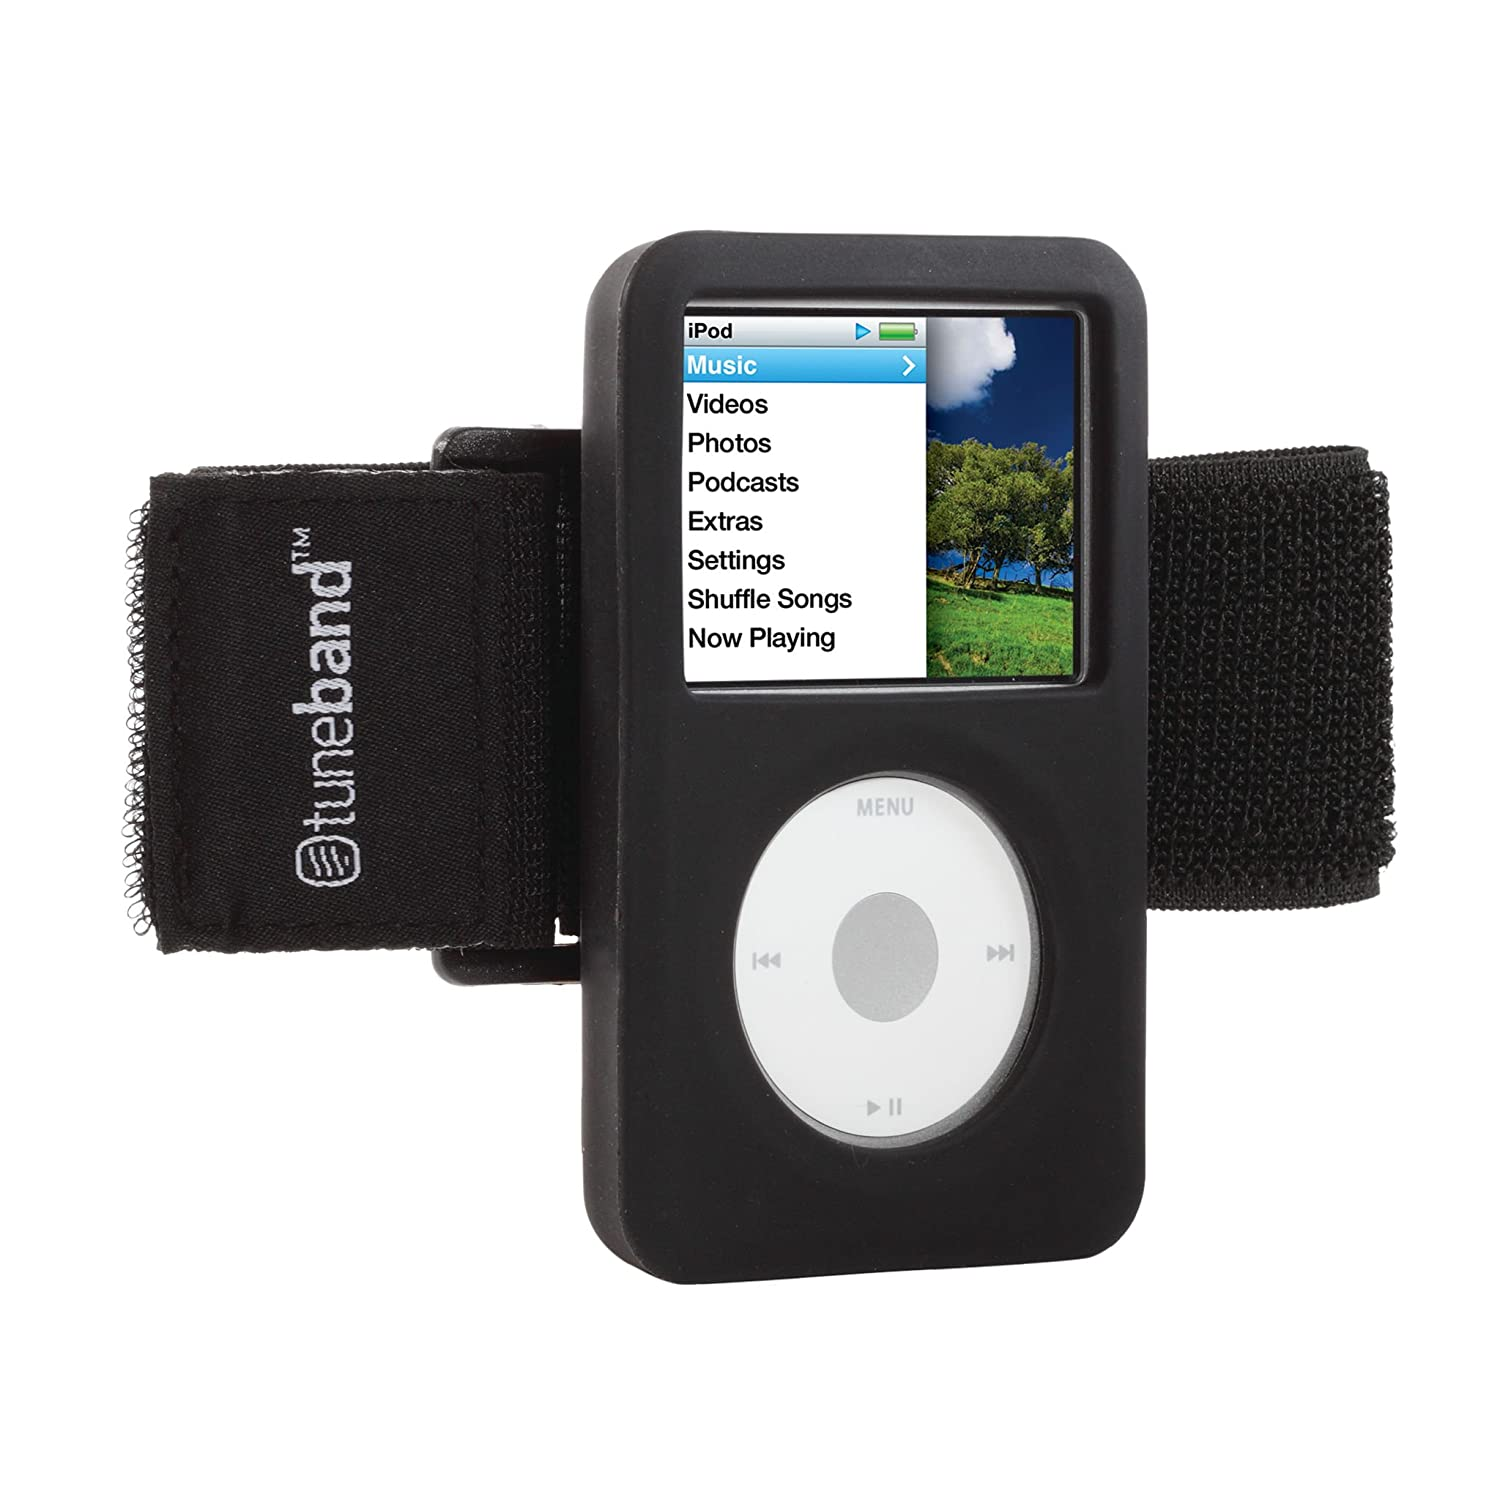 tuneband for ipod classic model a1238 80gb 120gb 160gb. Black Bedroom Furniture Sets. Home Design Ideas